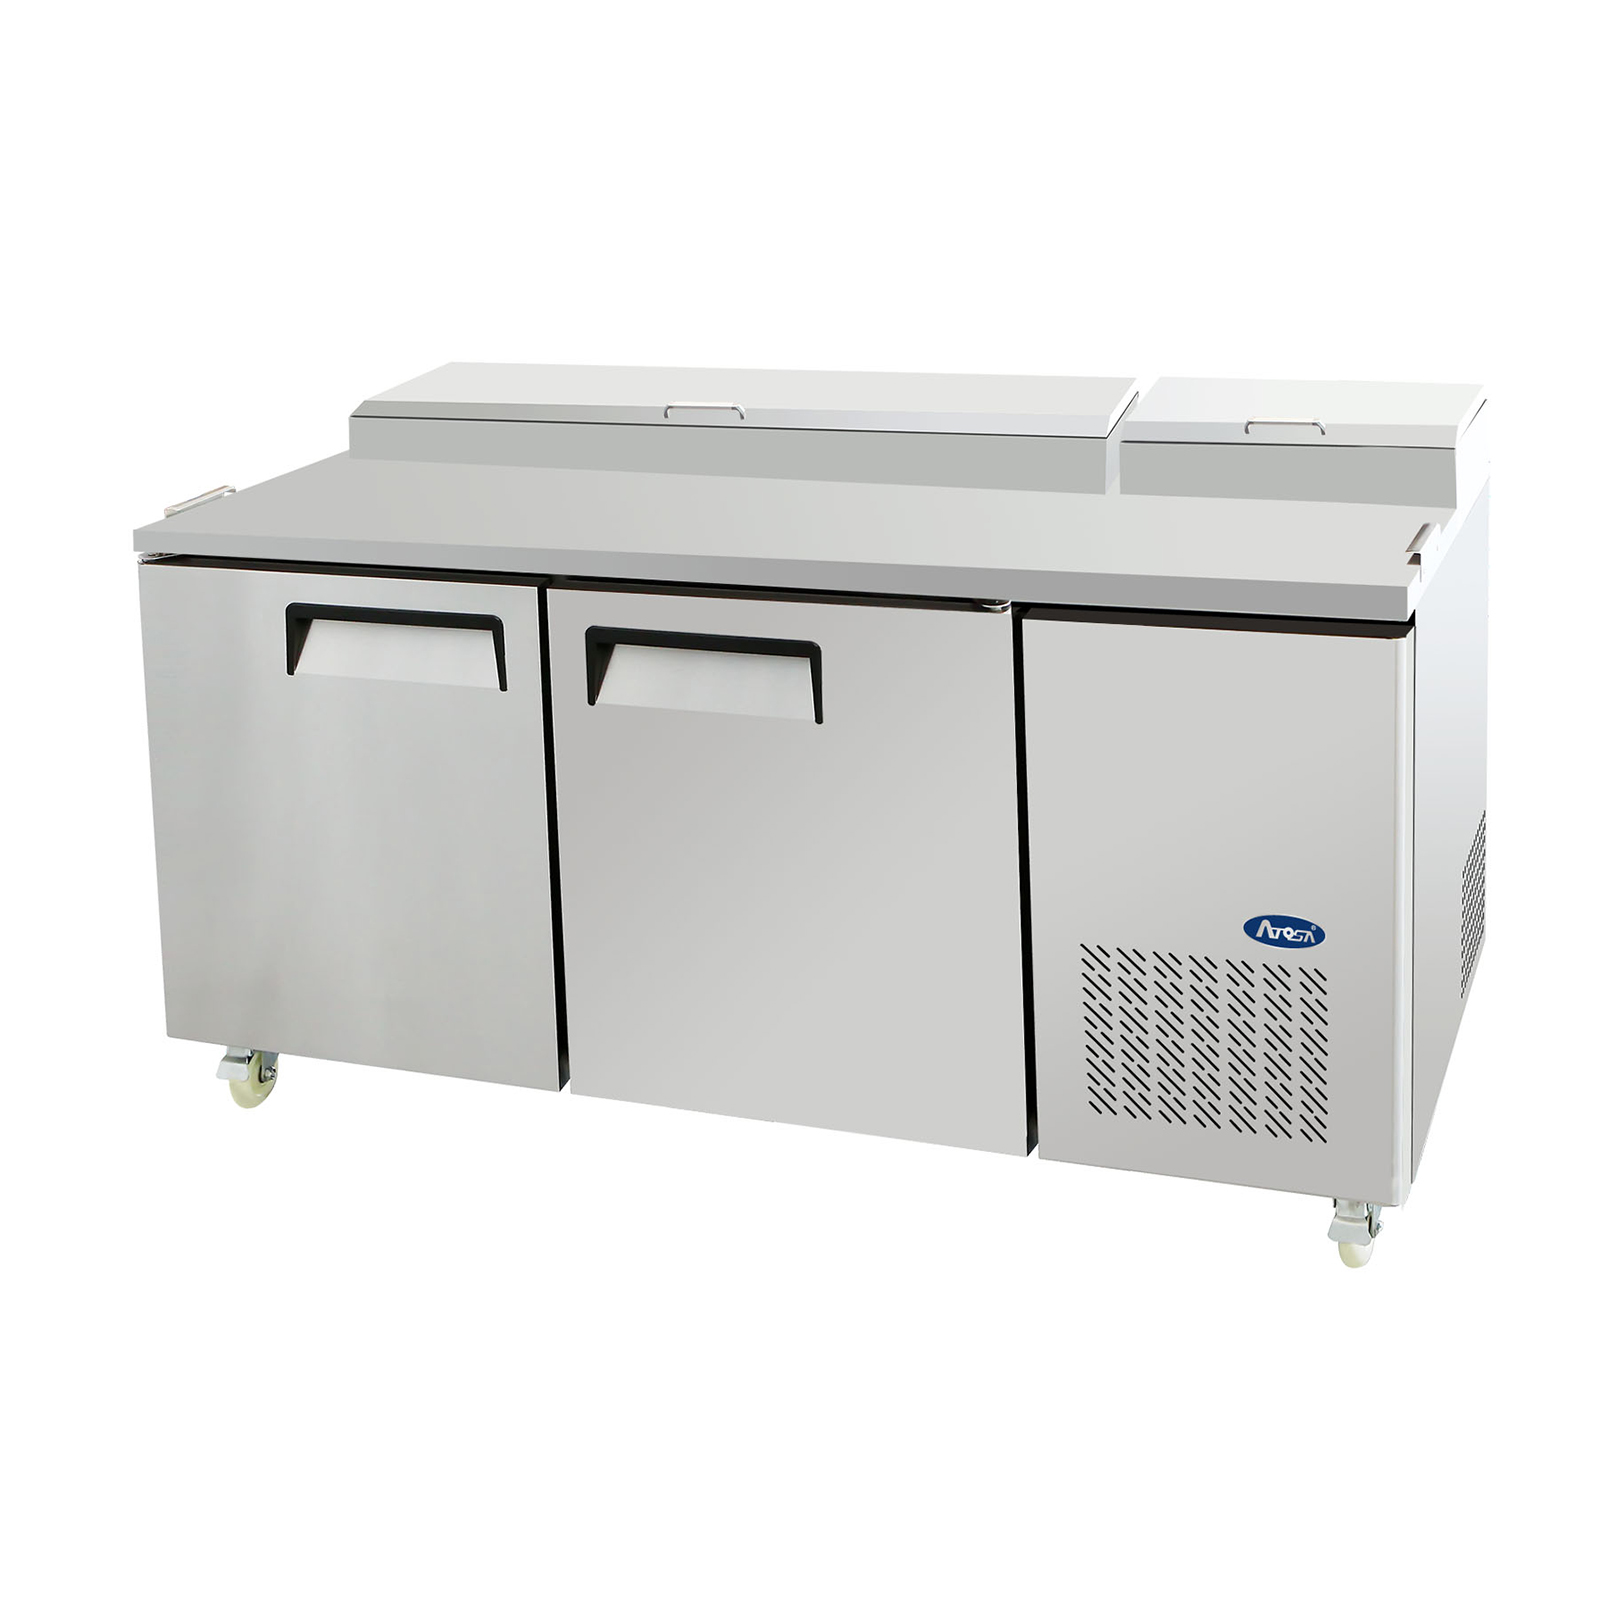 Atosa USA MPF8202GR refrigerated counter, pizza prep table